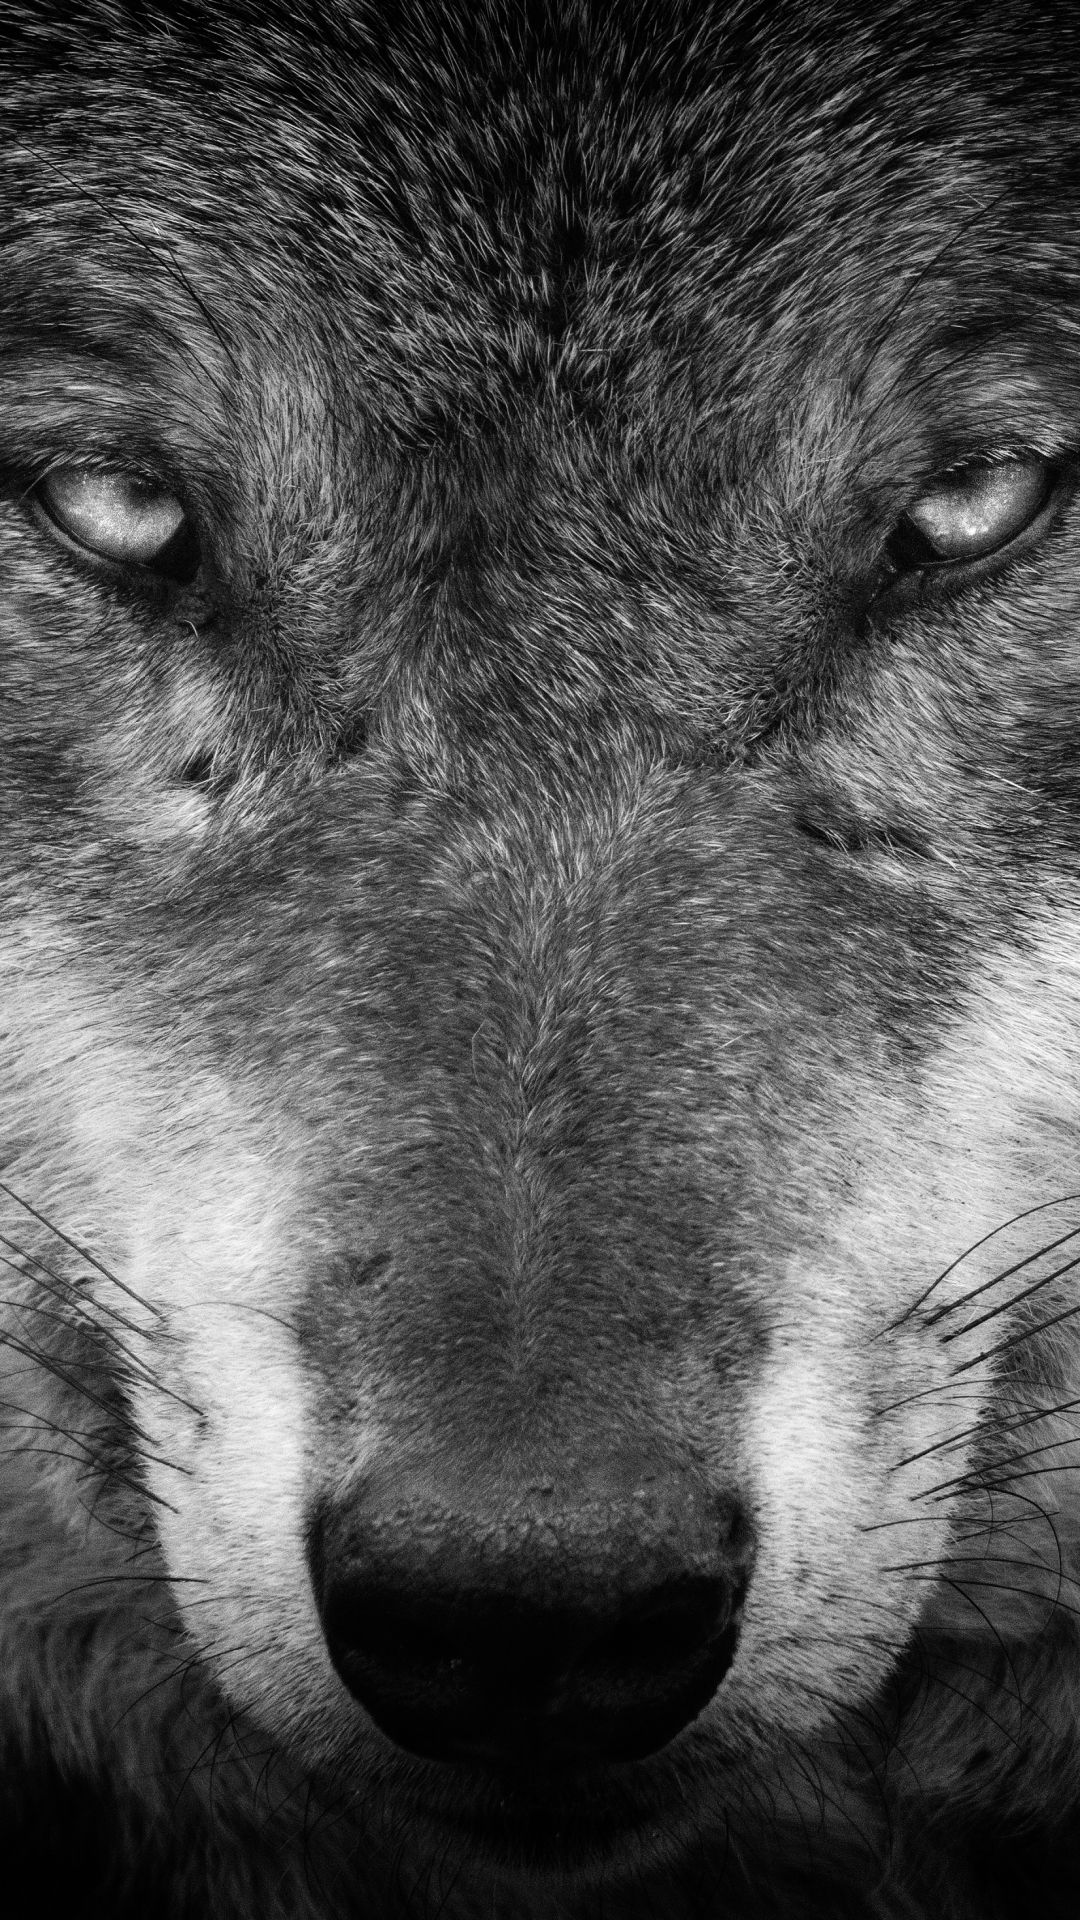 Wolf Wallpaper Hd Resolution Hupages Download Iphone Wallpapers Iphone Wallpaper Wolf Wolf Wallpaper Animal Wallpaper